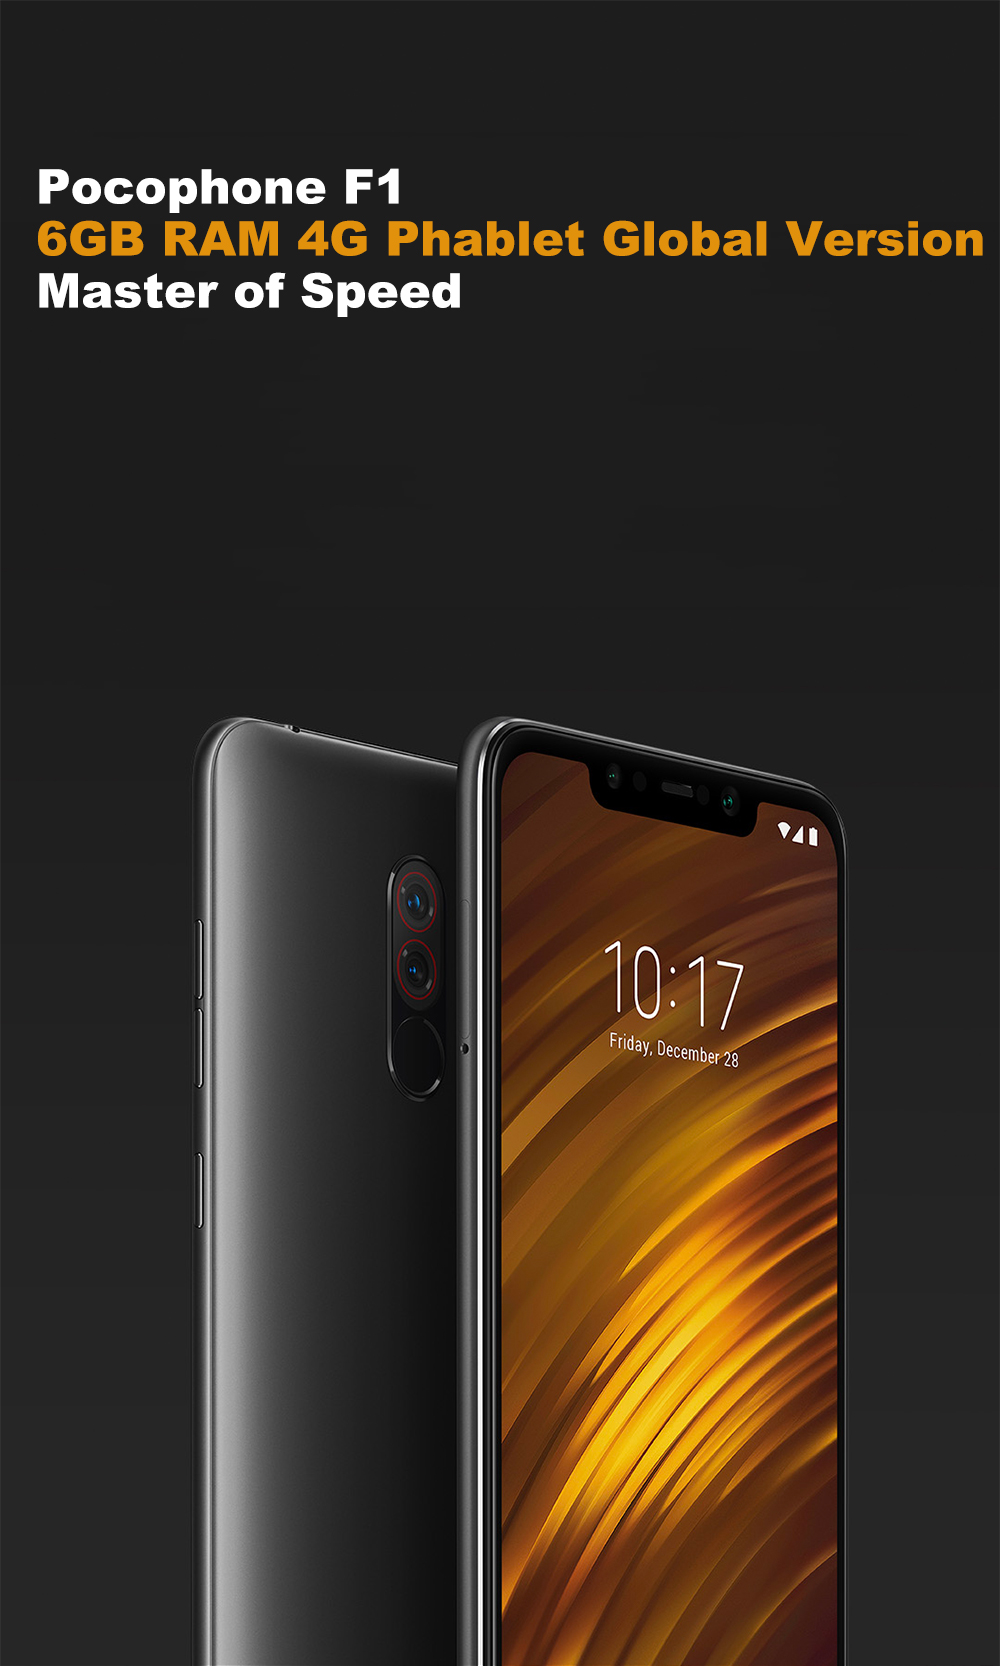 Xiaomi Pocophone F1 4G Phablet 6.18 inch Android 8.1 Snapdragon 845 Octa Core 2.8GHz 6GB RAM 64GB ROM 20.0MP Front Camera Fingerprint Sensor 4000mAh (typ ) / 3900mAh (min) Built-in- Red